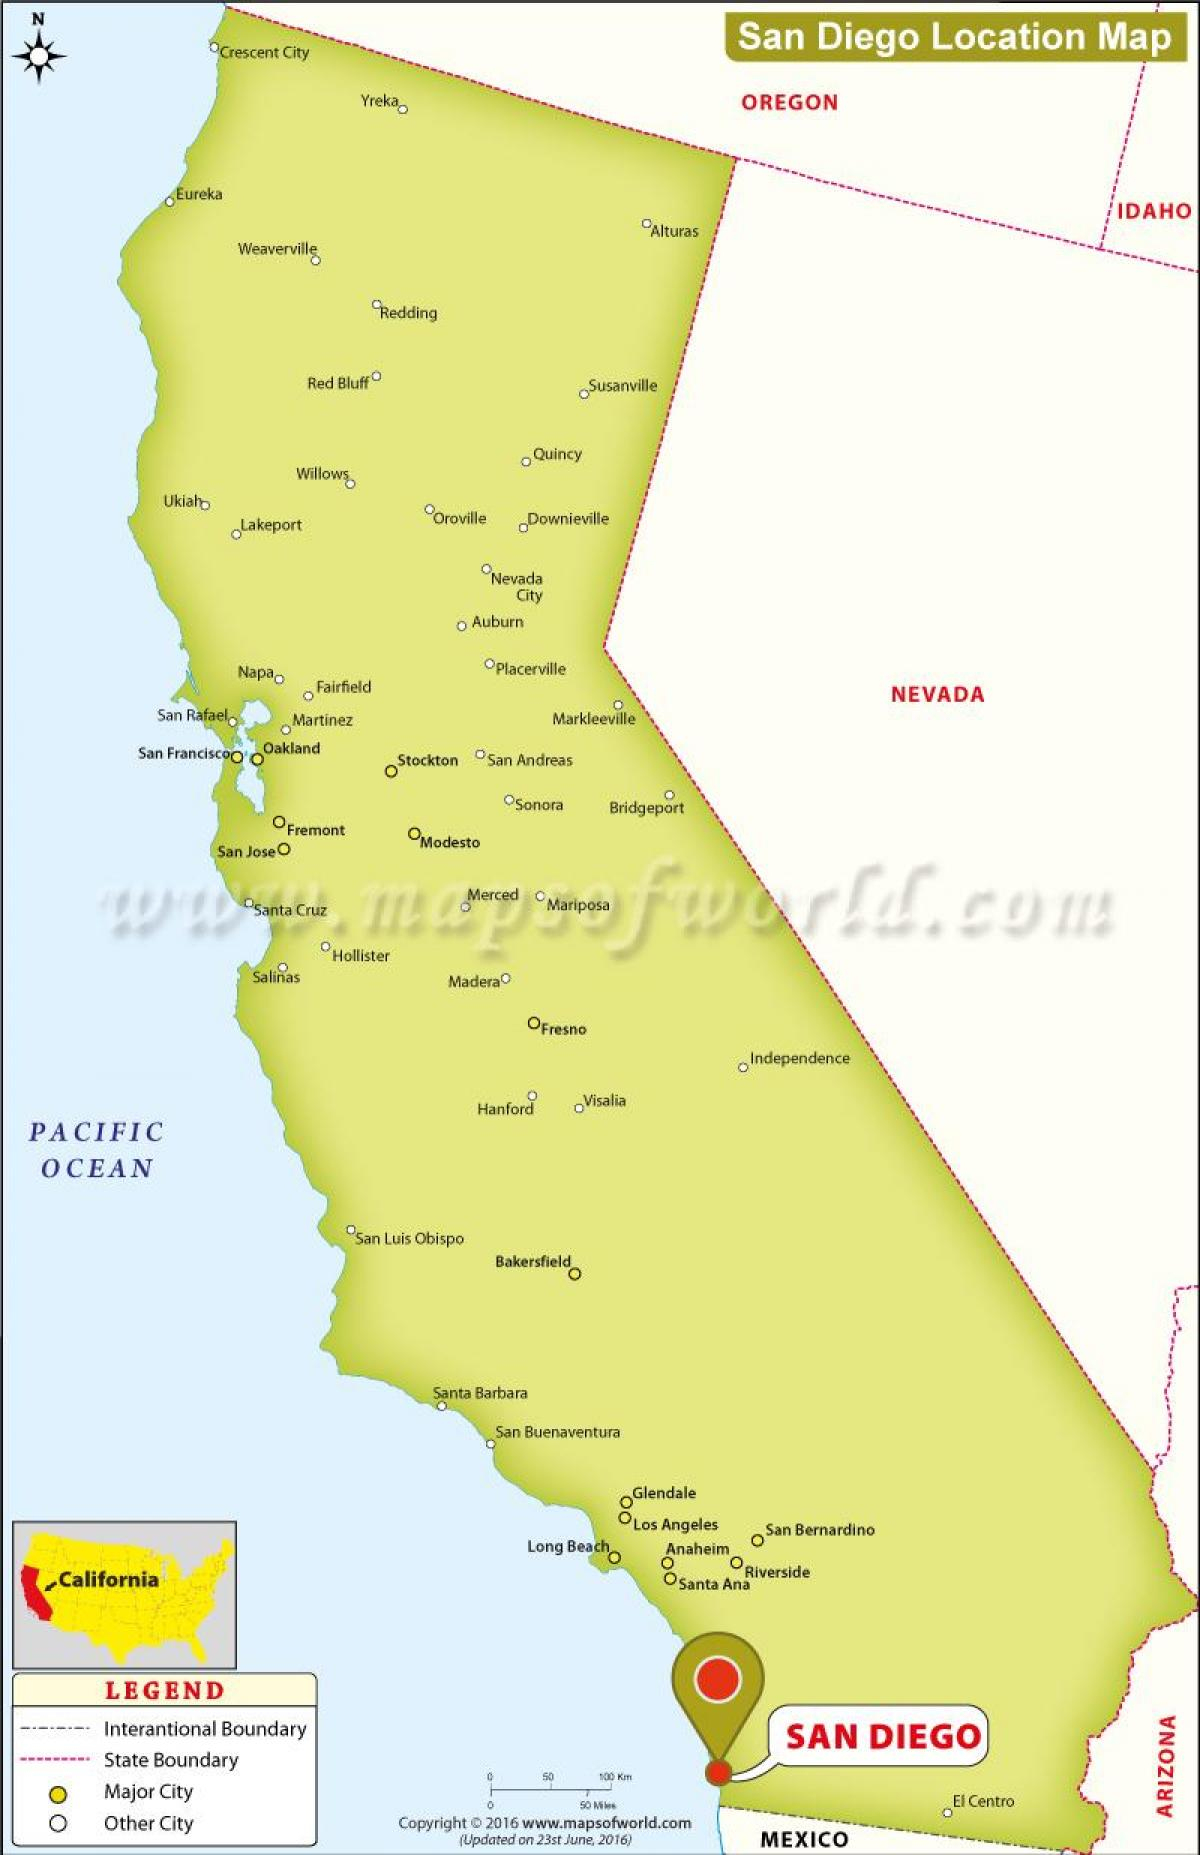 Map San Diego California Google Map Of Map Of San Diego California - San Diego On The Map Of California